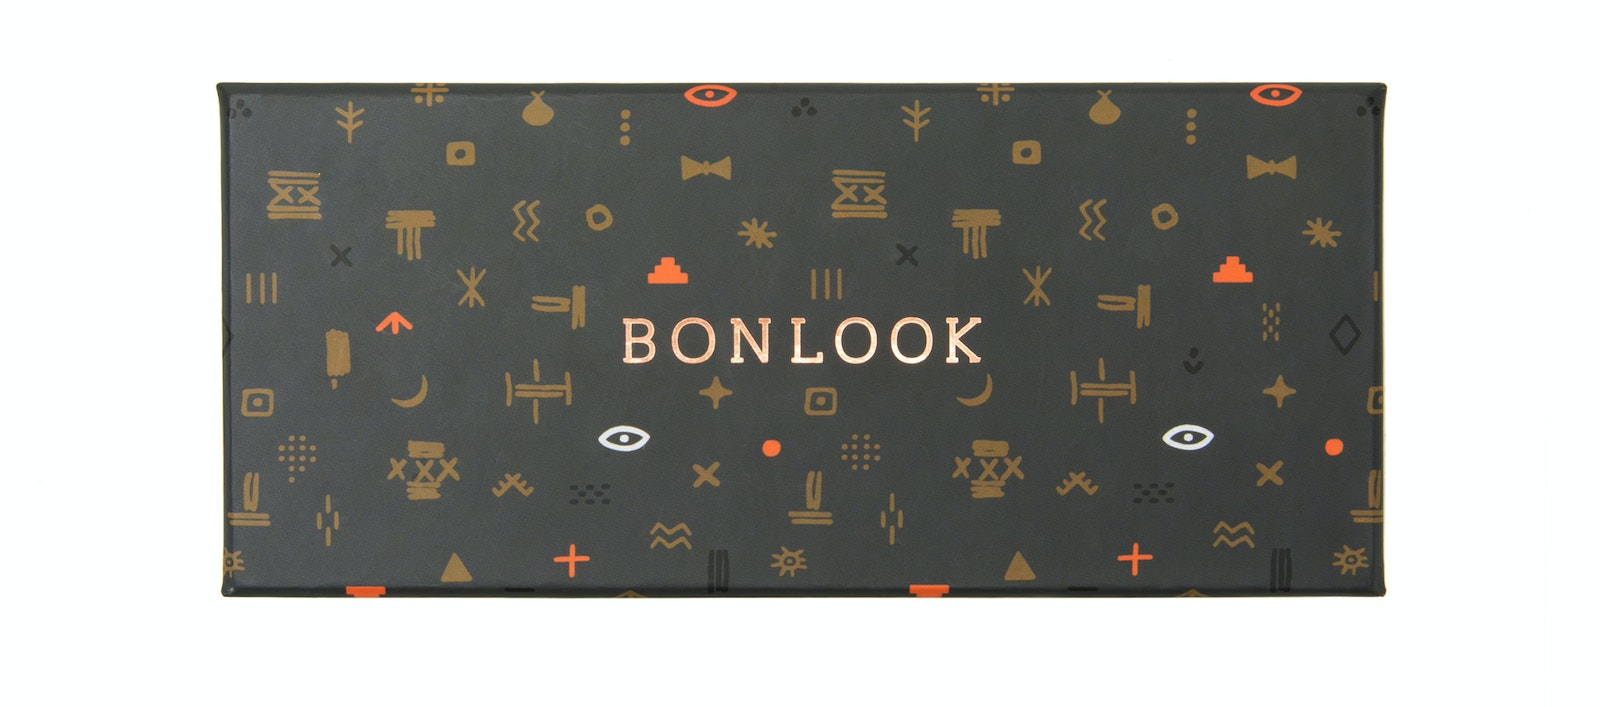 Affordable Fashion Glasses Accessory Men Women Classic Bonlook Case Symbols Tilt